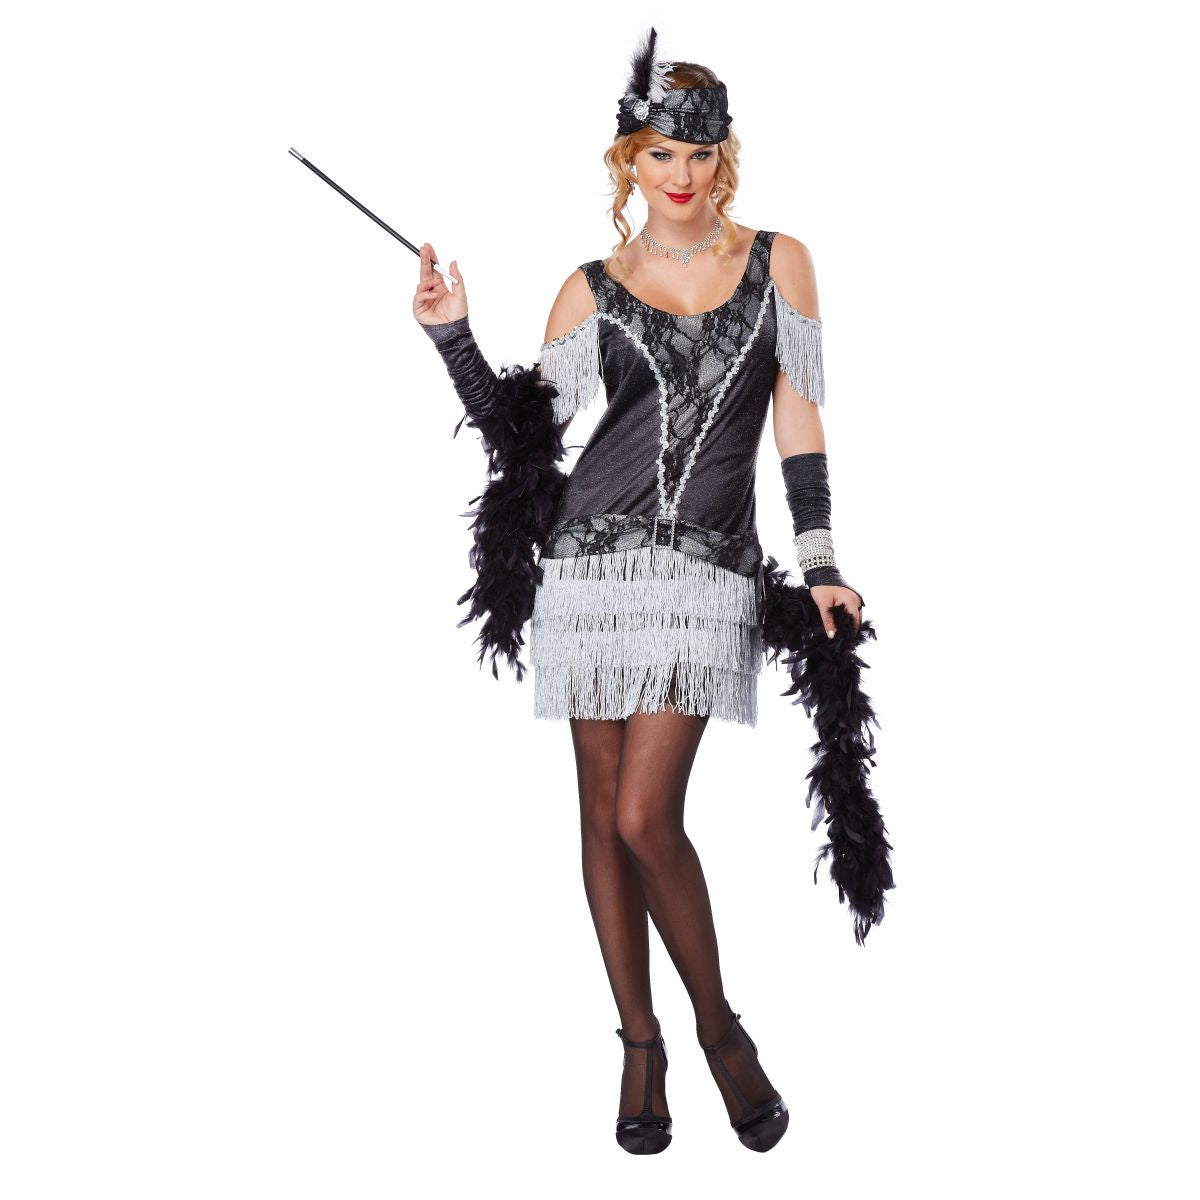 1920's Razzle Dazzle Glamorous Flapper Fancy Dress Costume with gloves